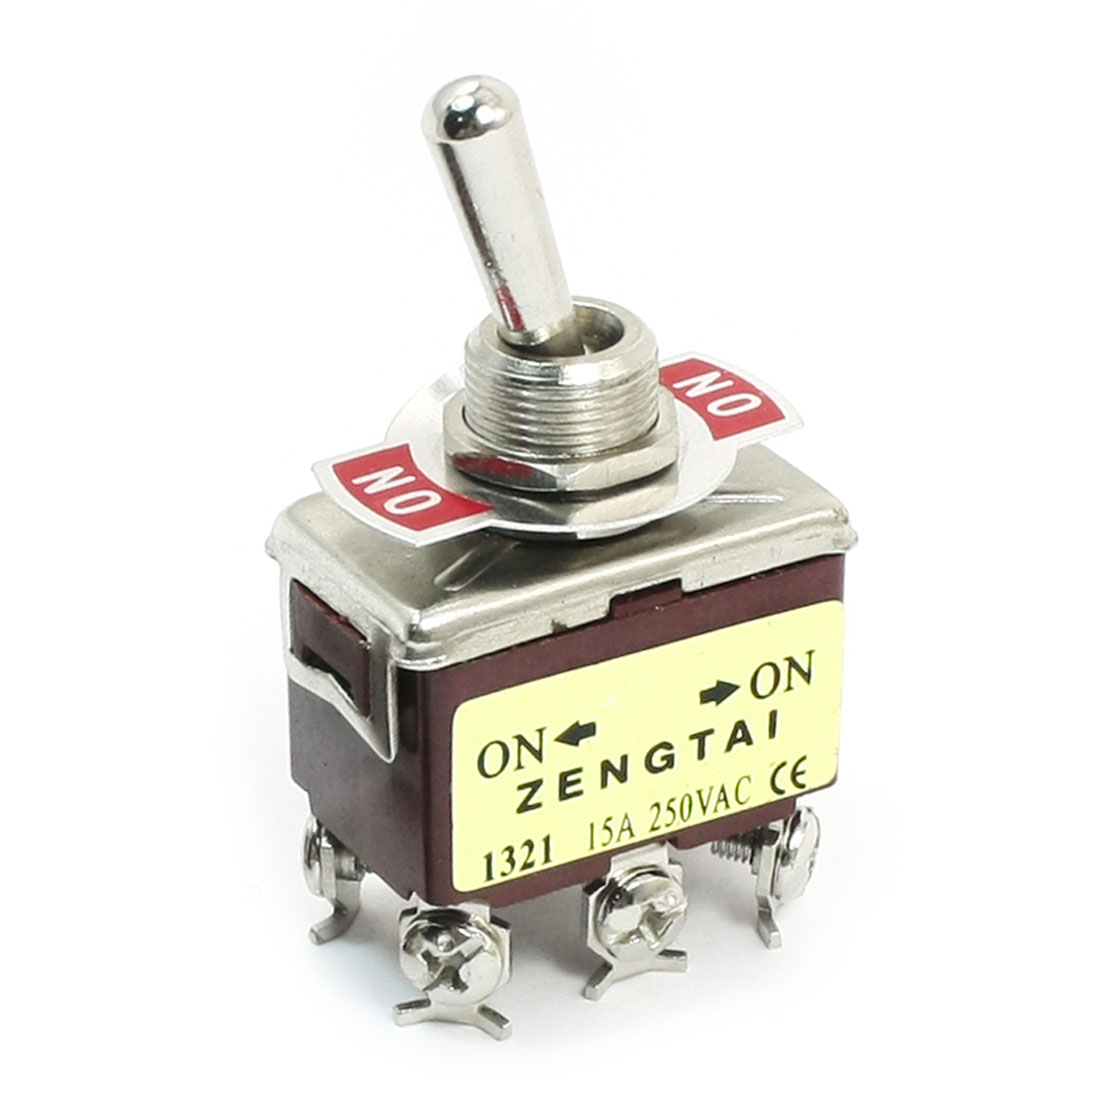 AC 250V 15A DPDT ON-ON 2 Positions 6 Pin Latching Toggle Switch E-TEN1321